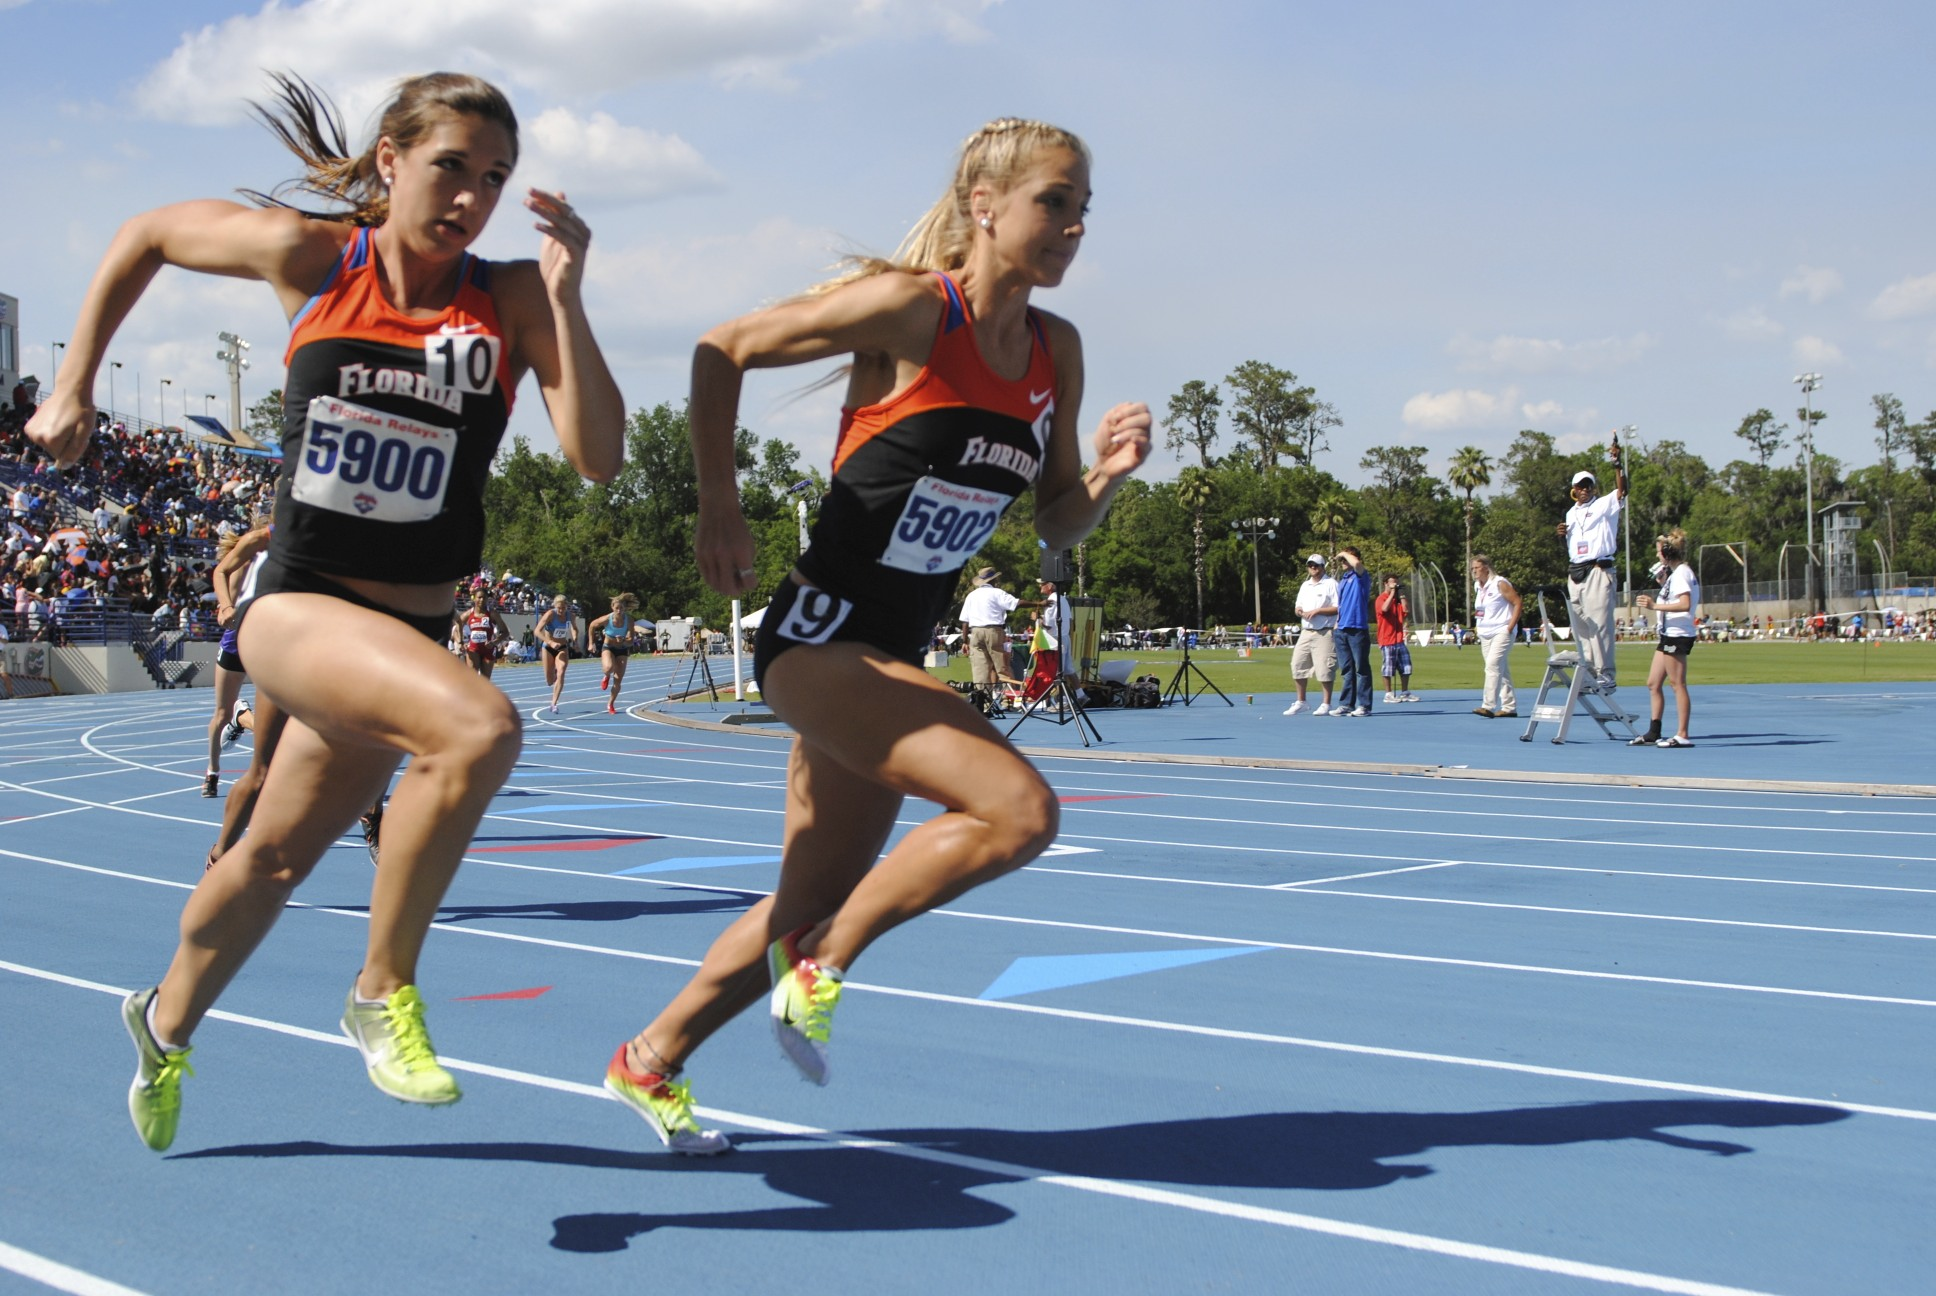 Shelby Hayes and Genevieve LaCaze at the start of the 800 meter run.